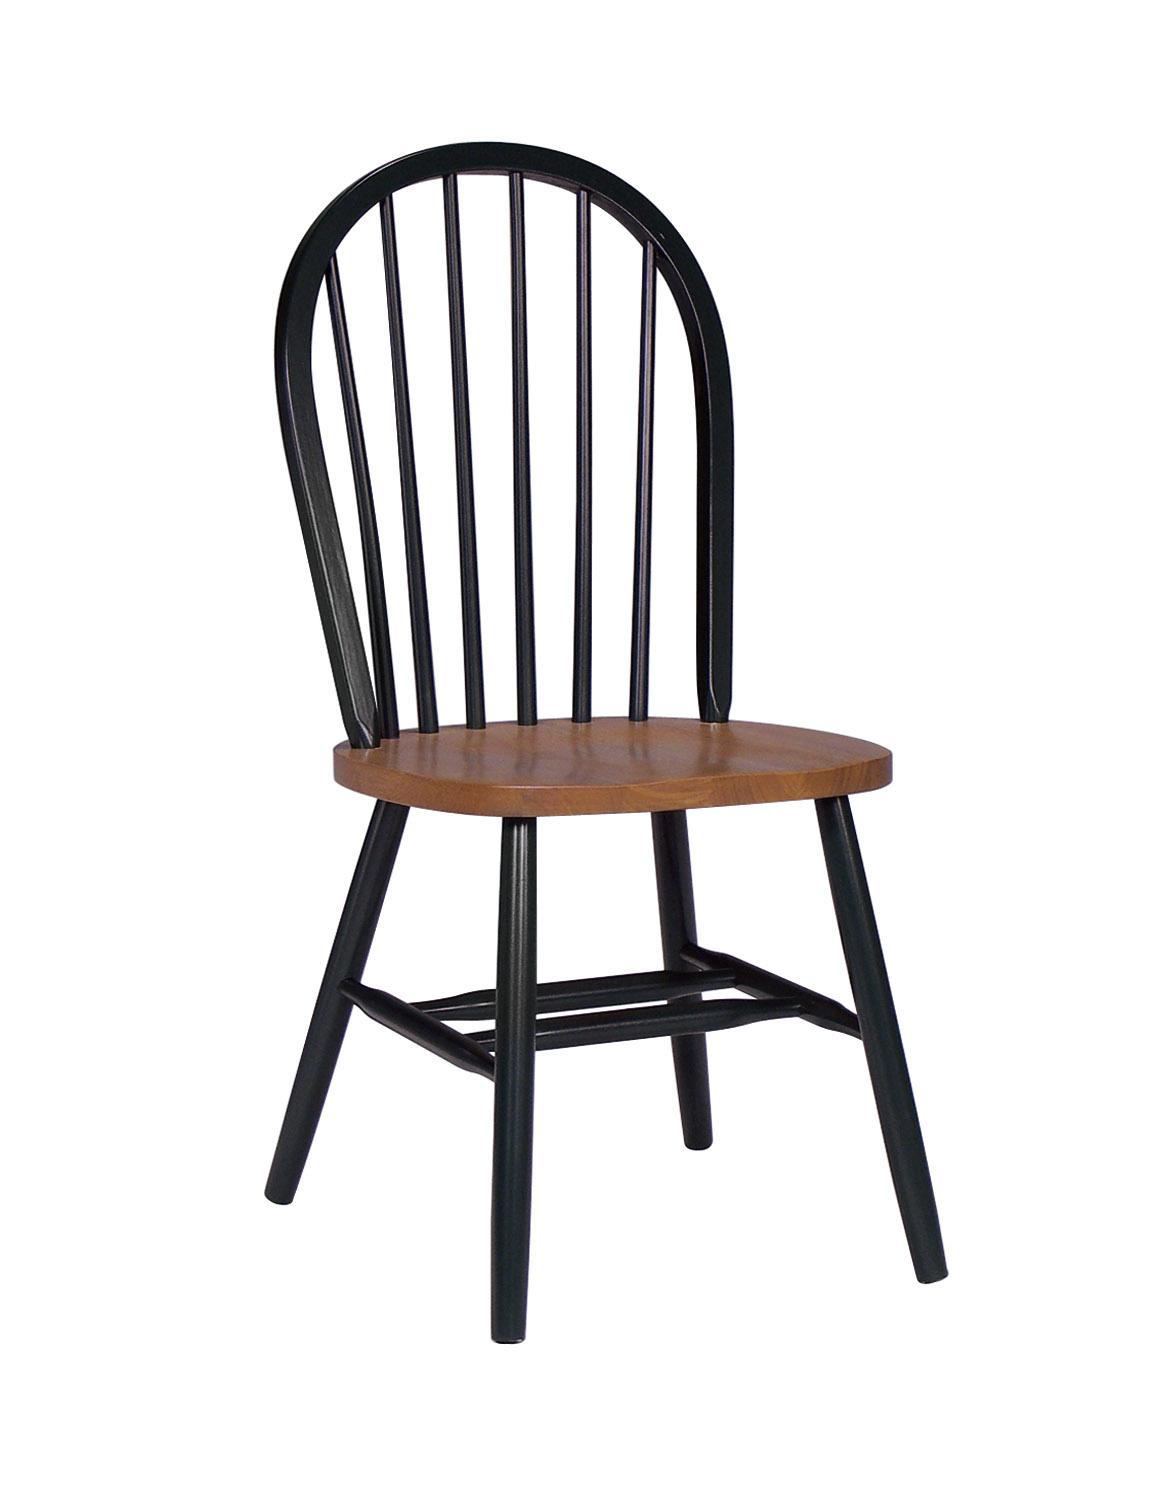 John Thomas Dining Essentials Windsor Dining Side Chair - Item Number: C57-112